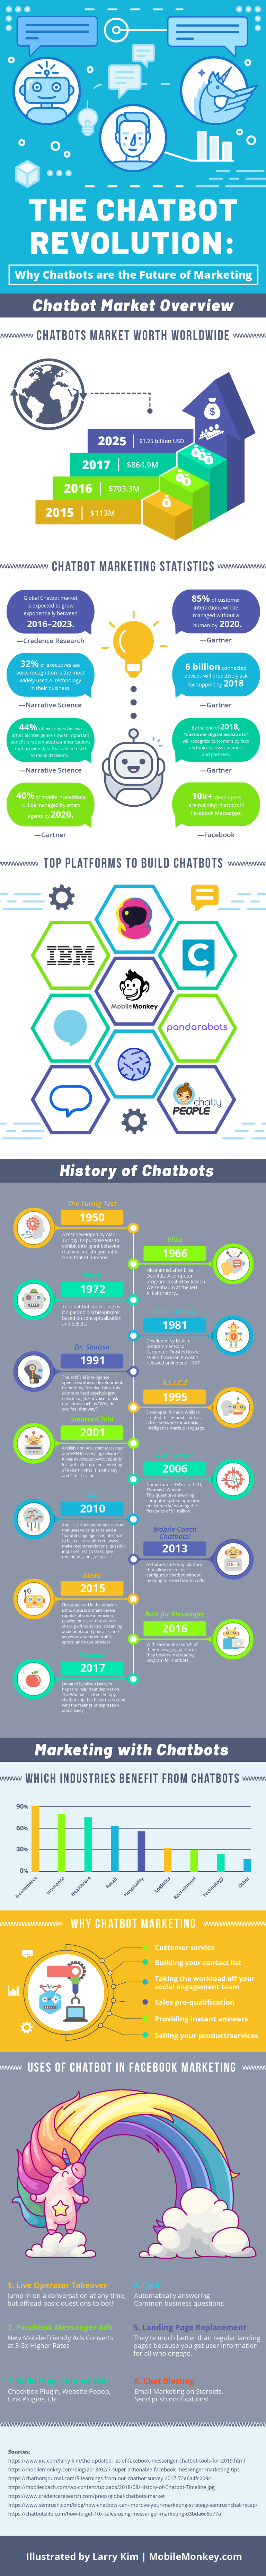 How Chatbots Will Transform